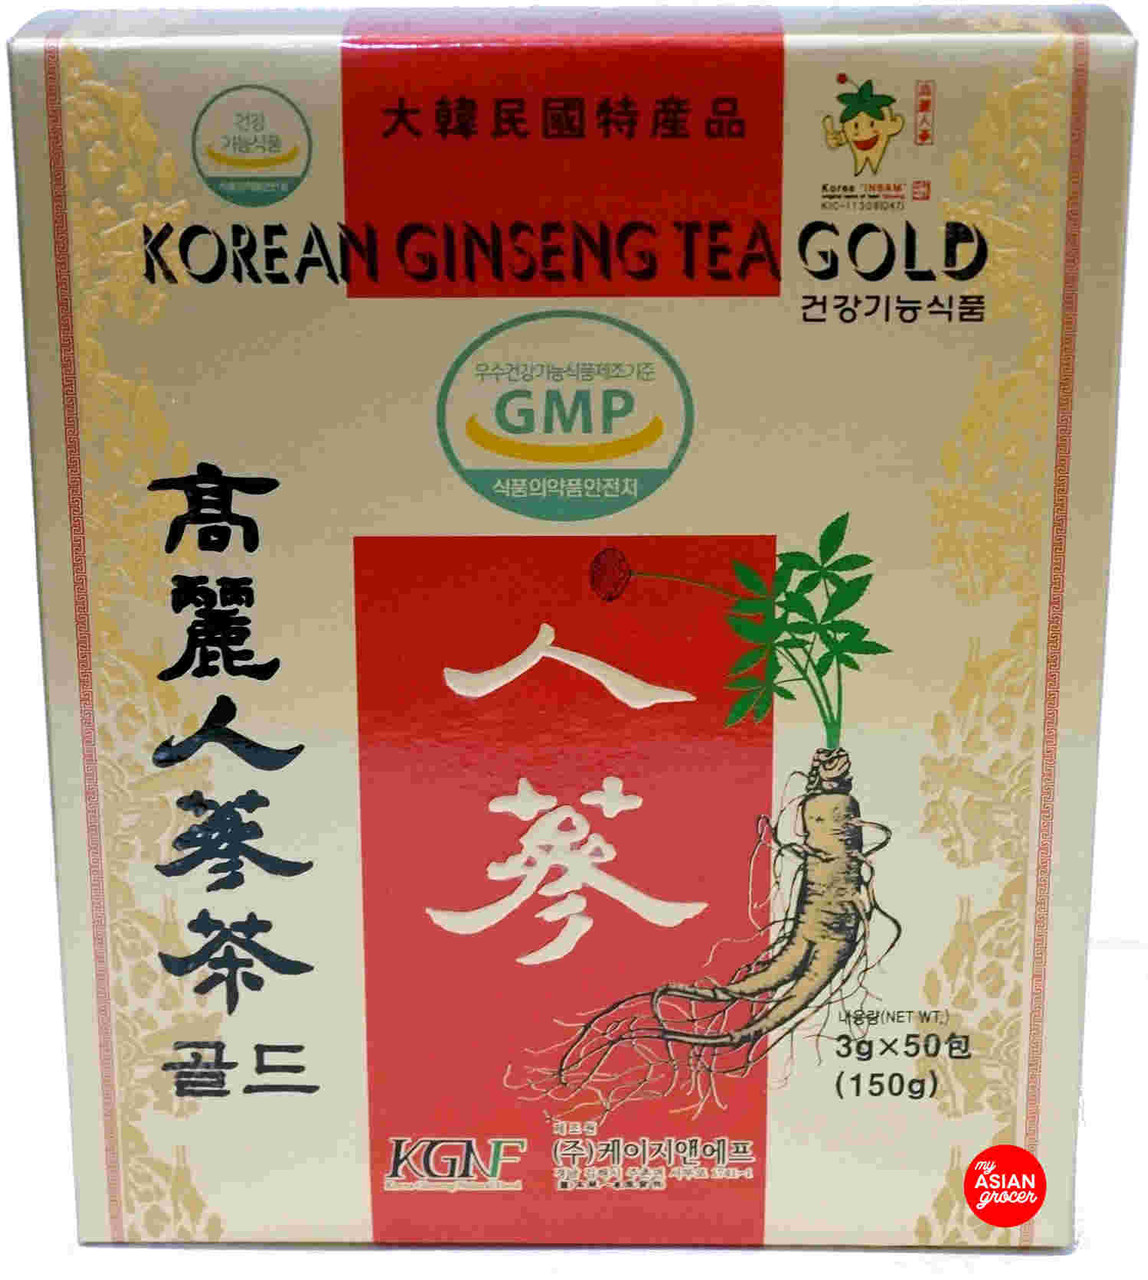 KGNF Korean Ginseng Tea Gold 3g x 50 Sachet